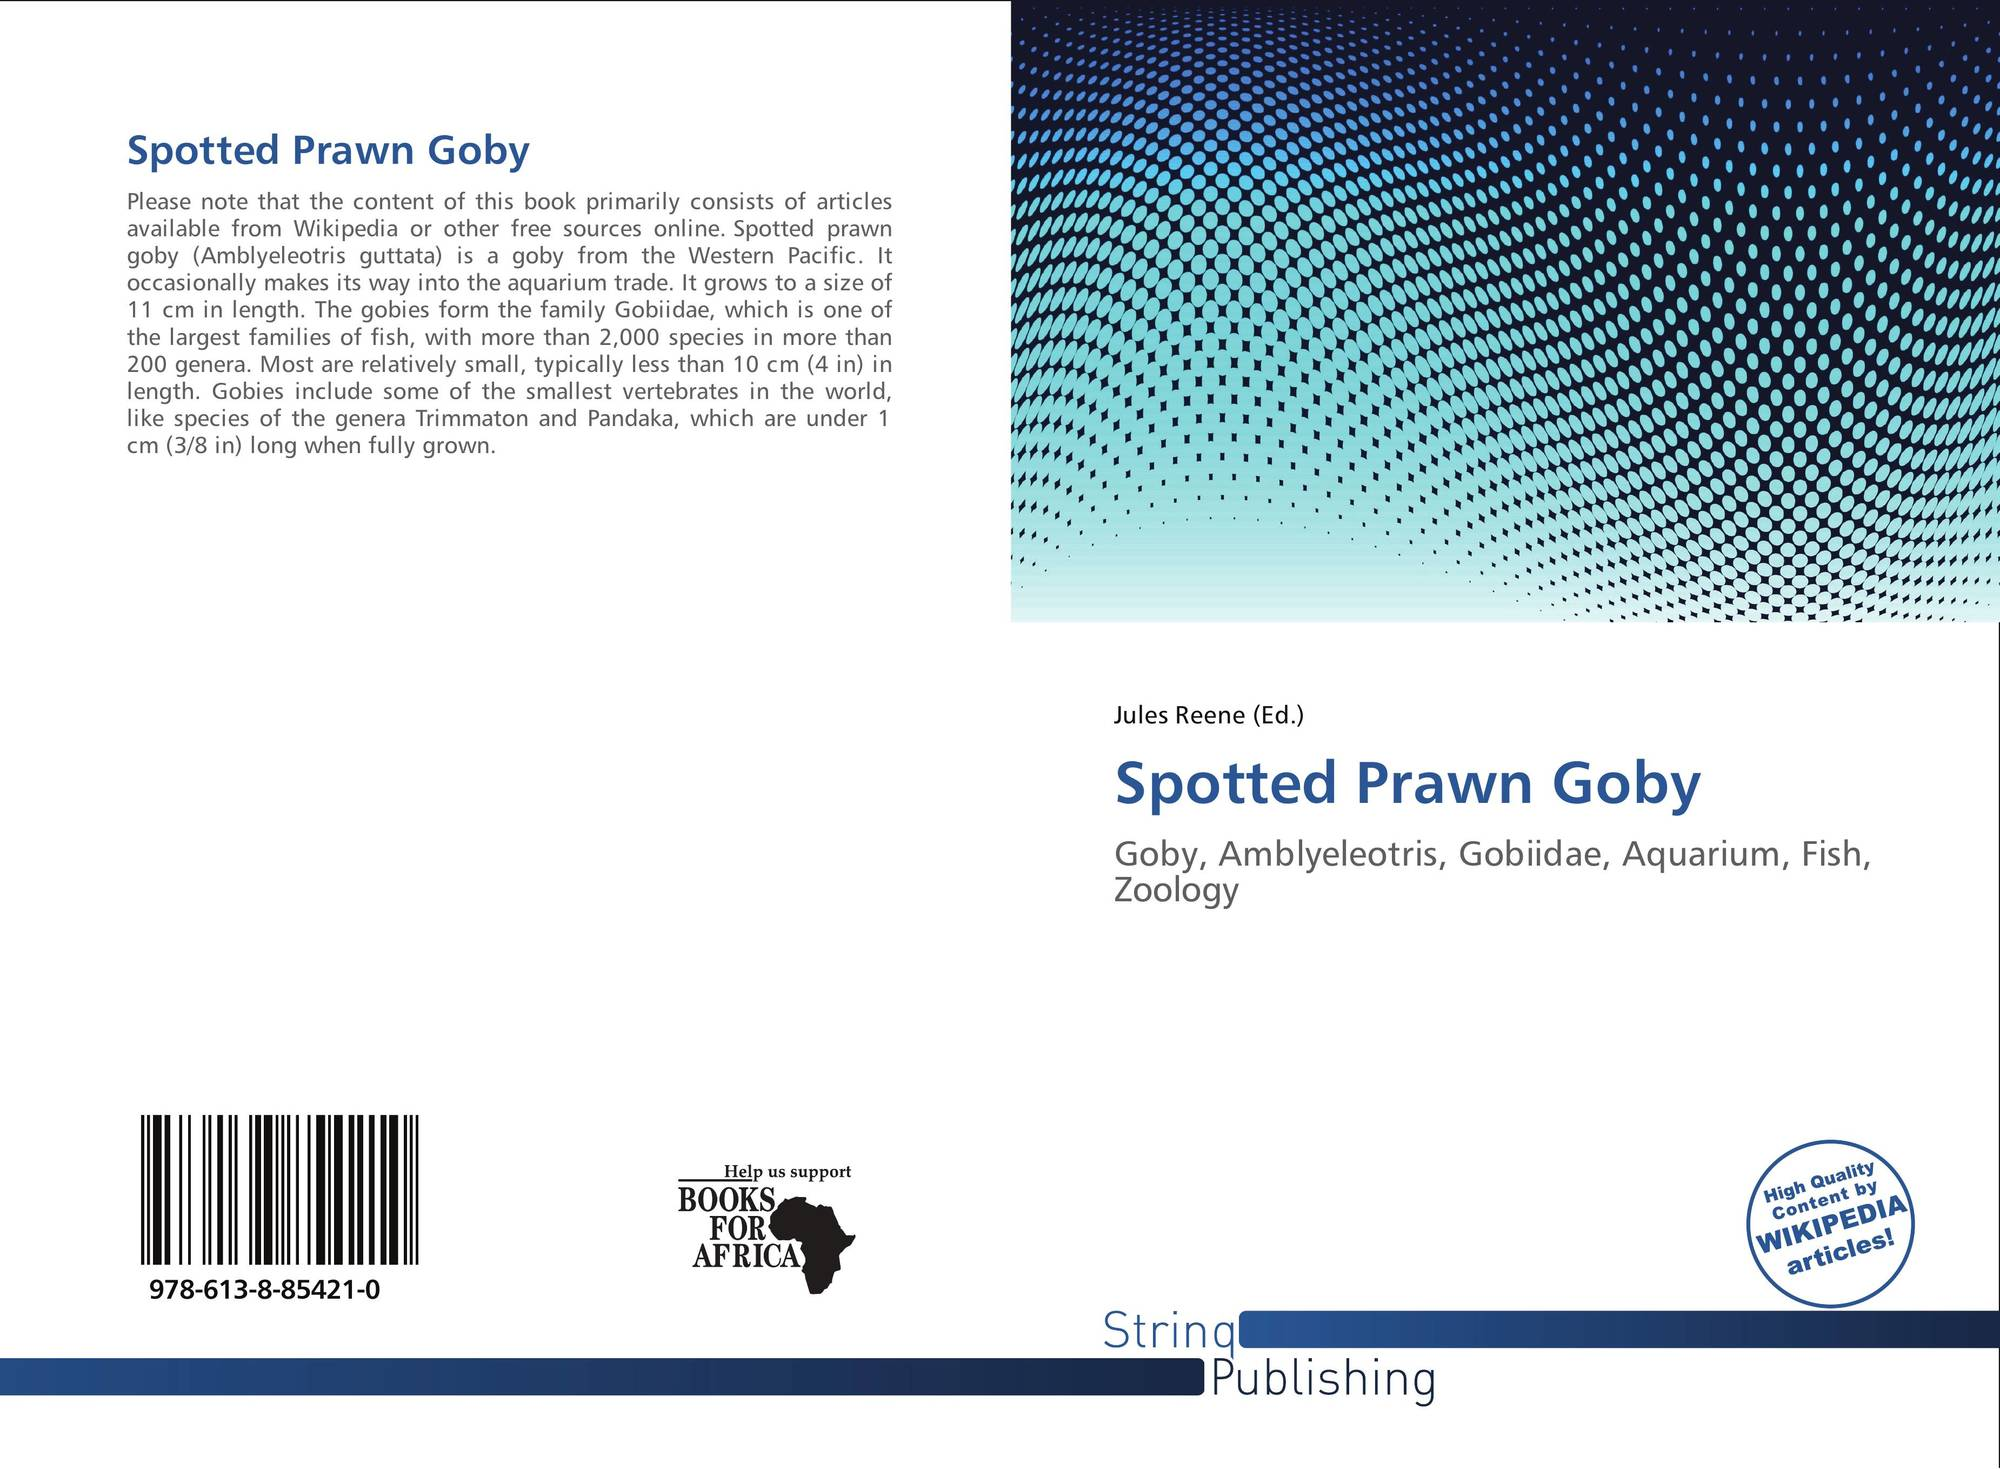 Freshwater aquarium fish gobiidae - Bookcover Of Spotted Prawn Goby